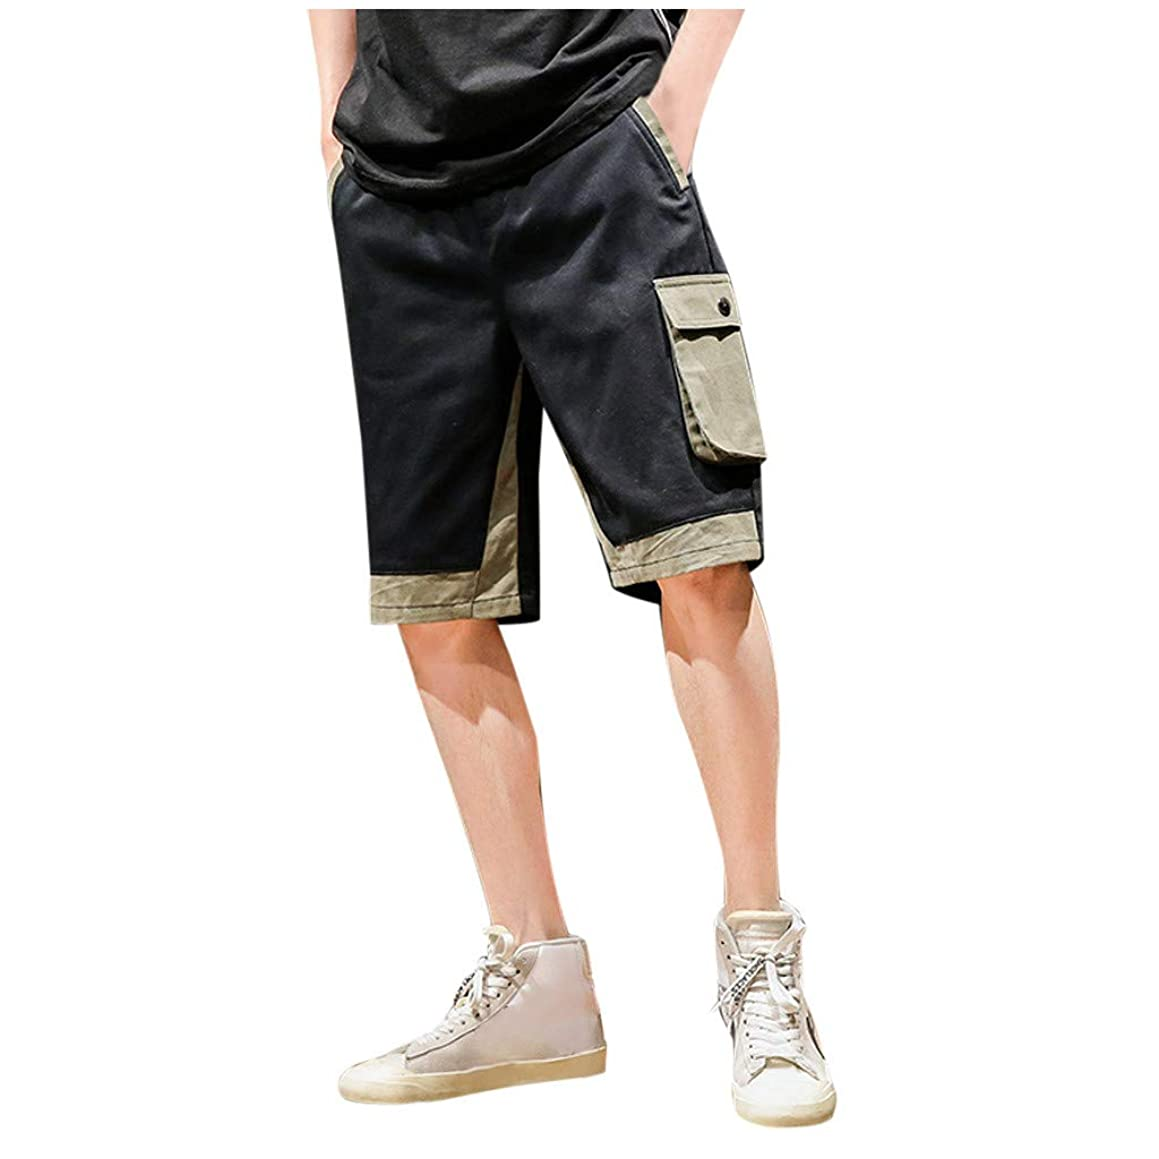 Answerl? Men's Outdoor Lightweight Hiking Shorts Quick Dry Shorts Sports Casual Elastic Waist Drawstring Shorts with Pocket